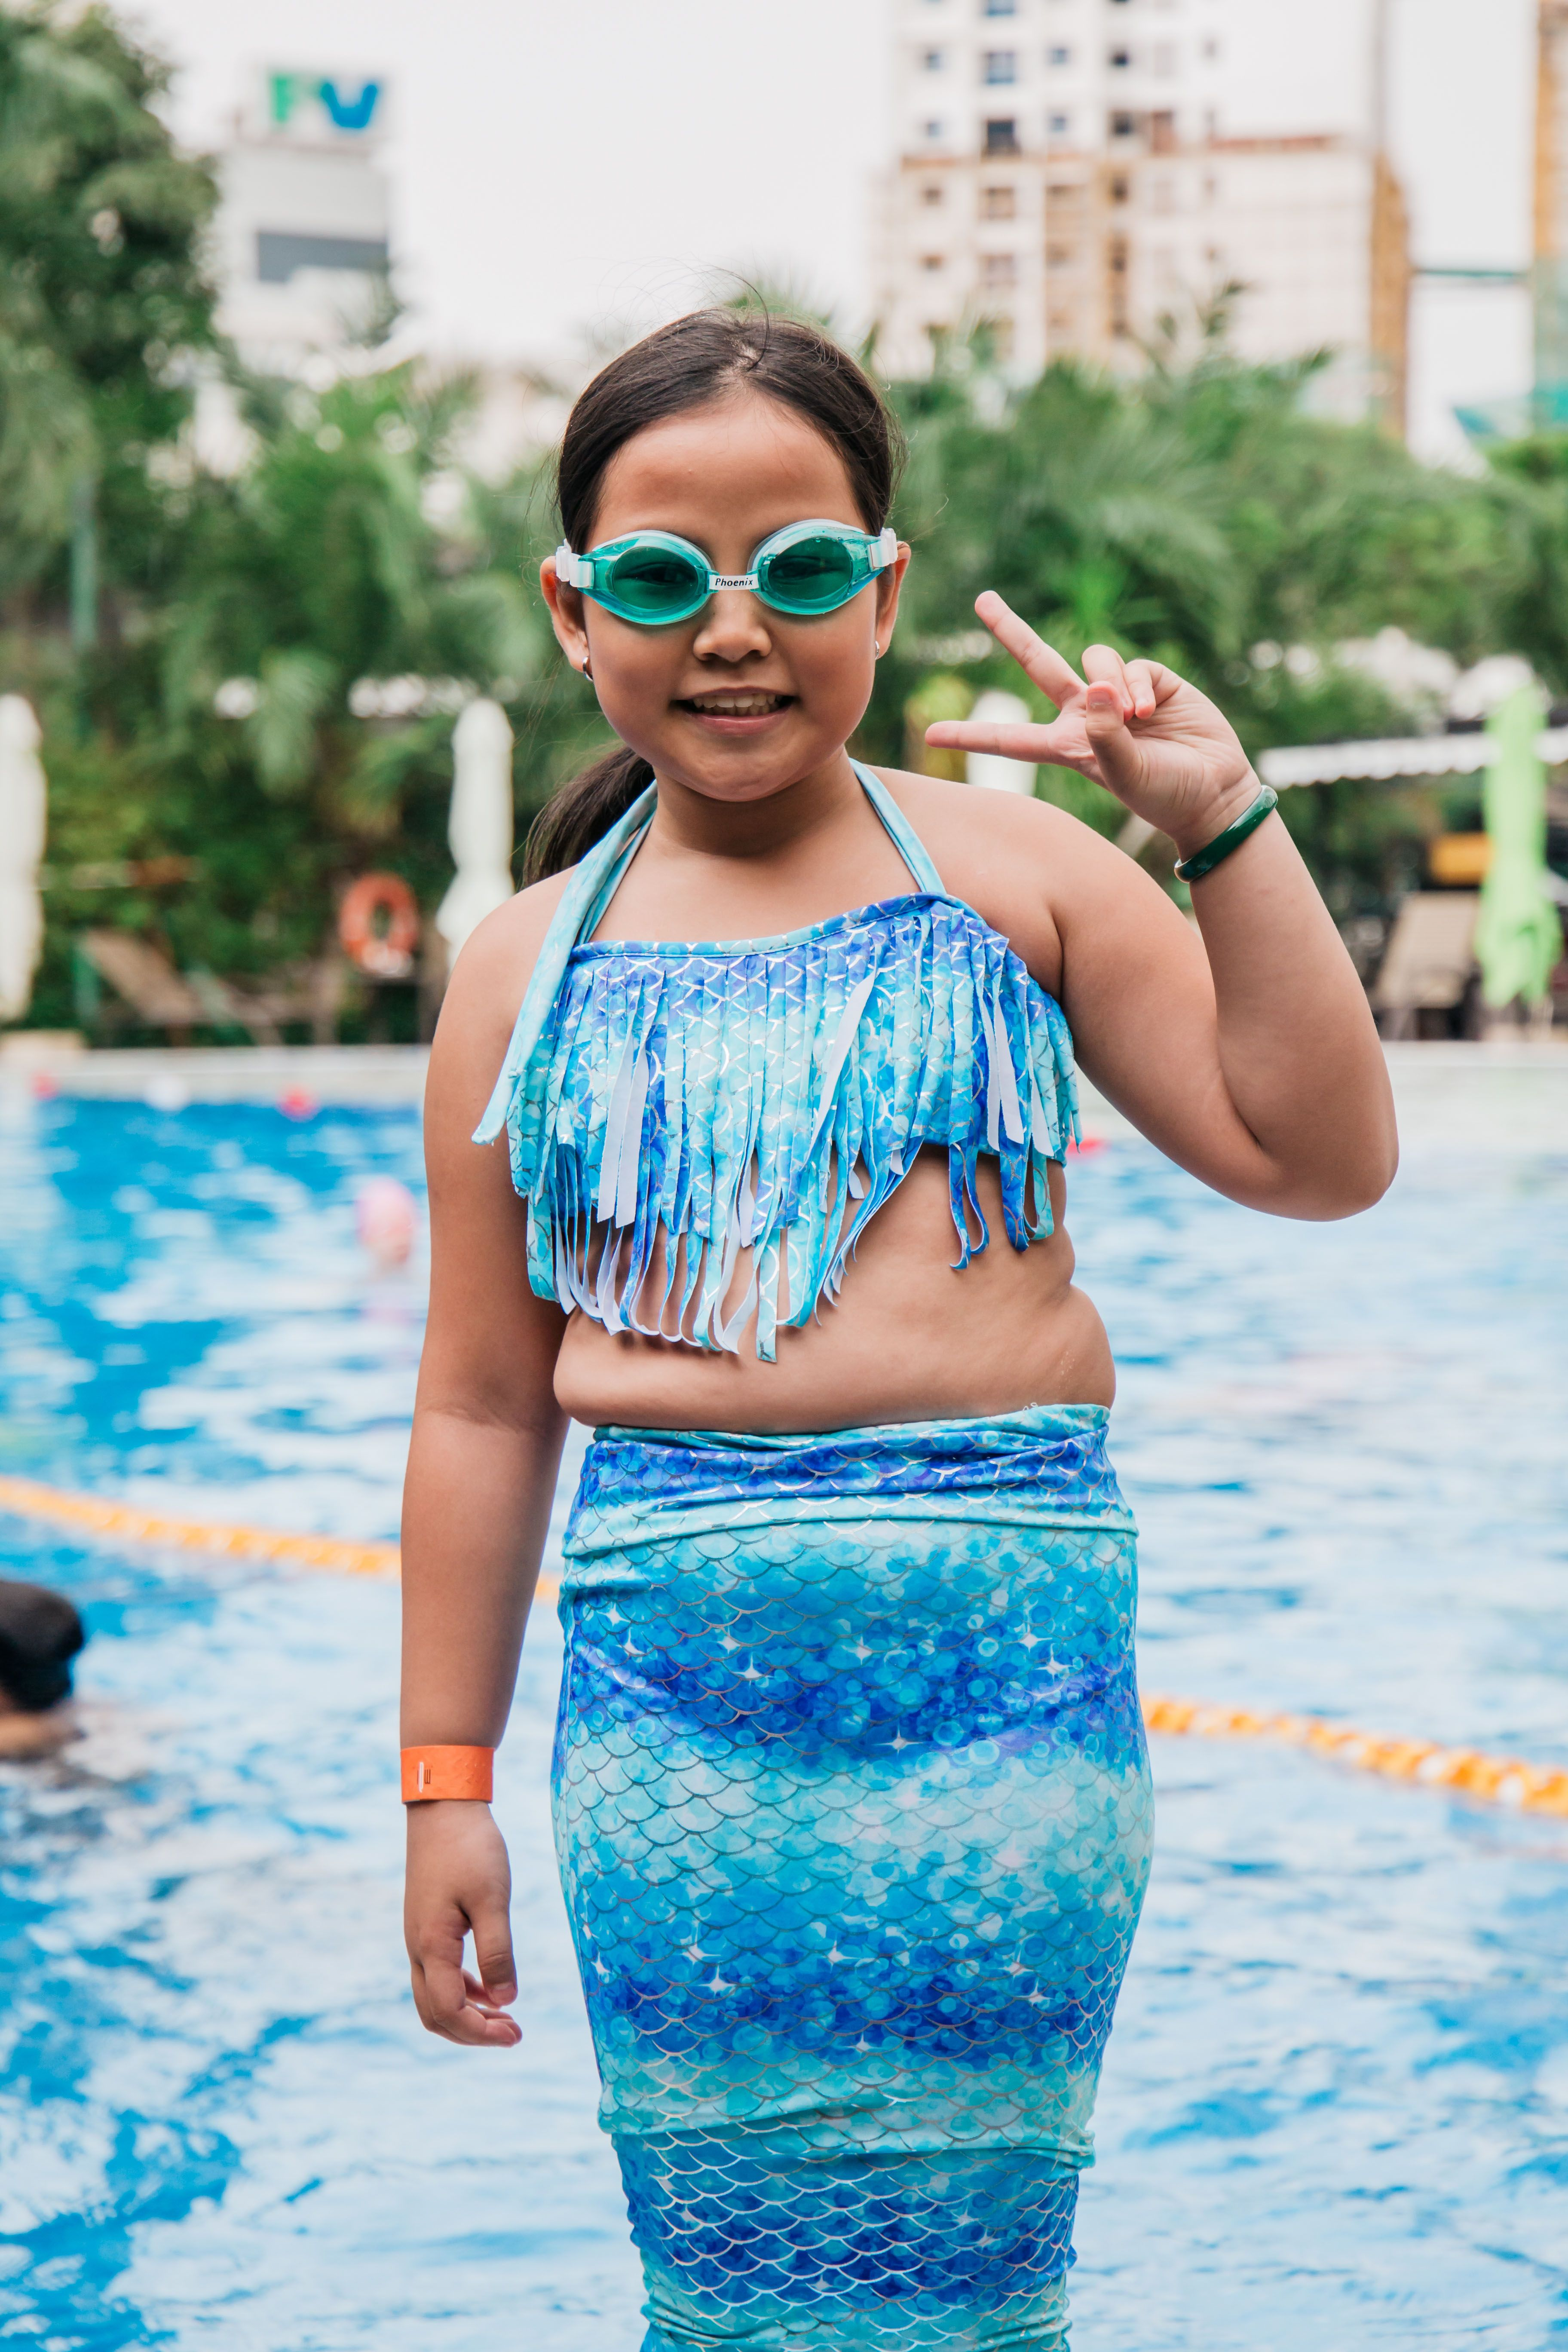 New 2018 Fairy Mermaid Swimsuit For Kids Girls Mermaid Tail With Flipper Beach Wear Suit Swimming Dress Cosplay Costumes Mother & Kids